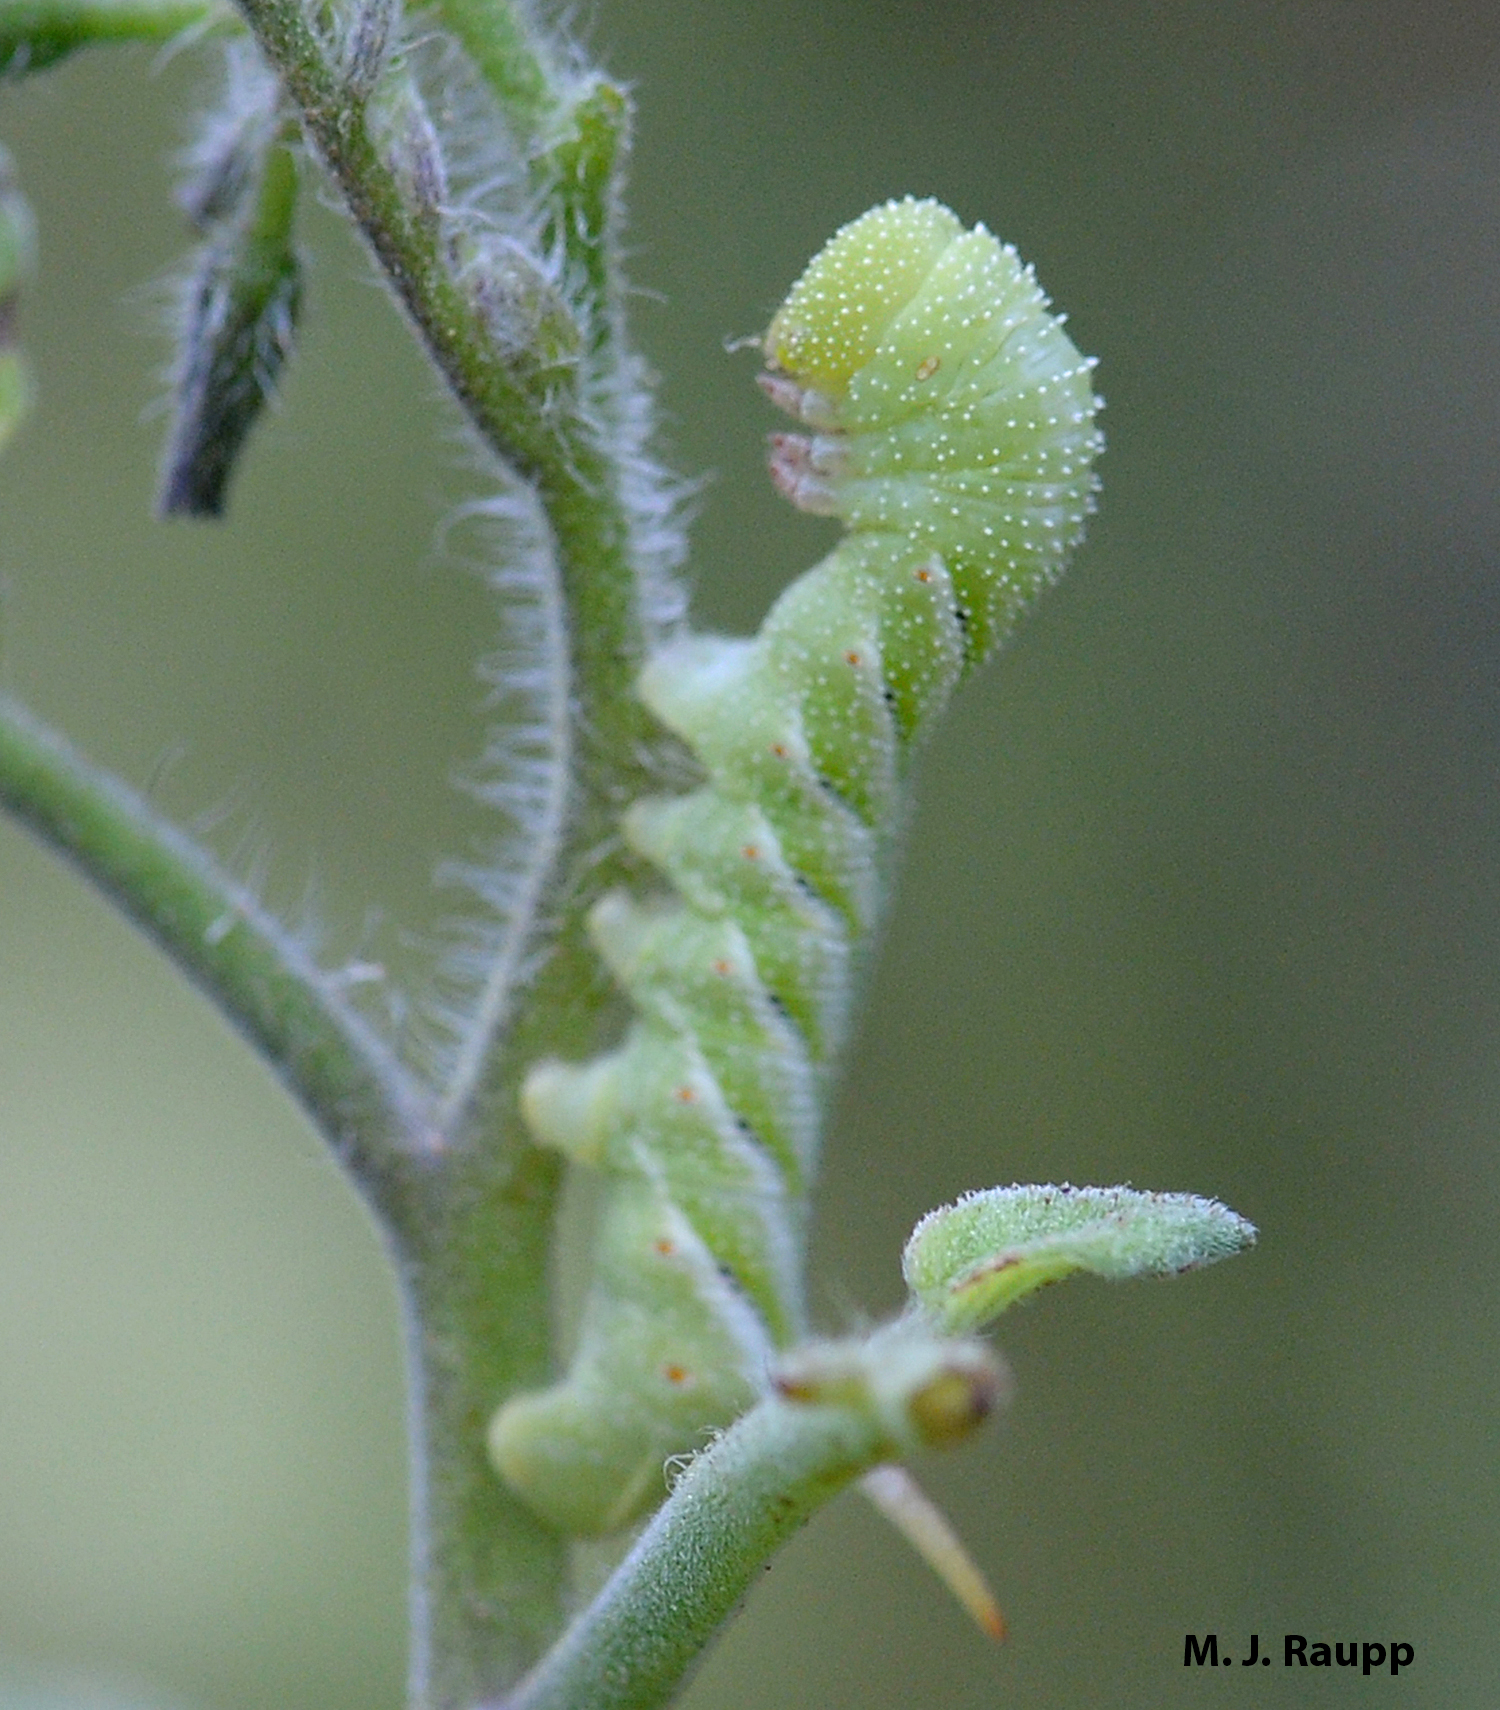 Leaves of my tomato were the last meal for this hornworm and parasitic wasps had the last laugh.